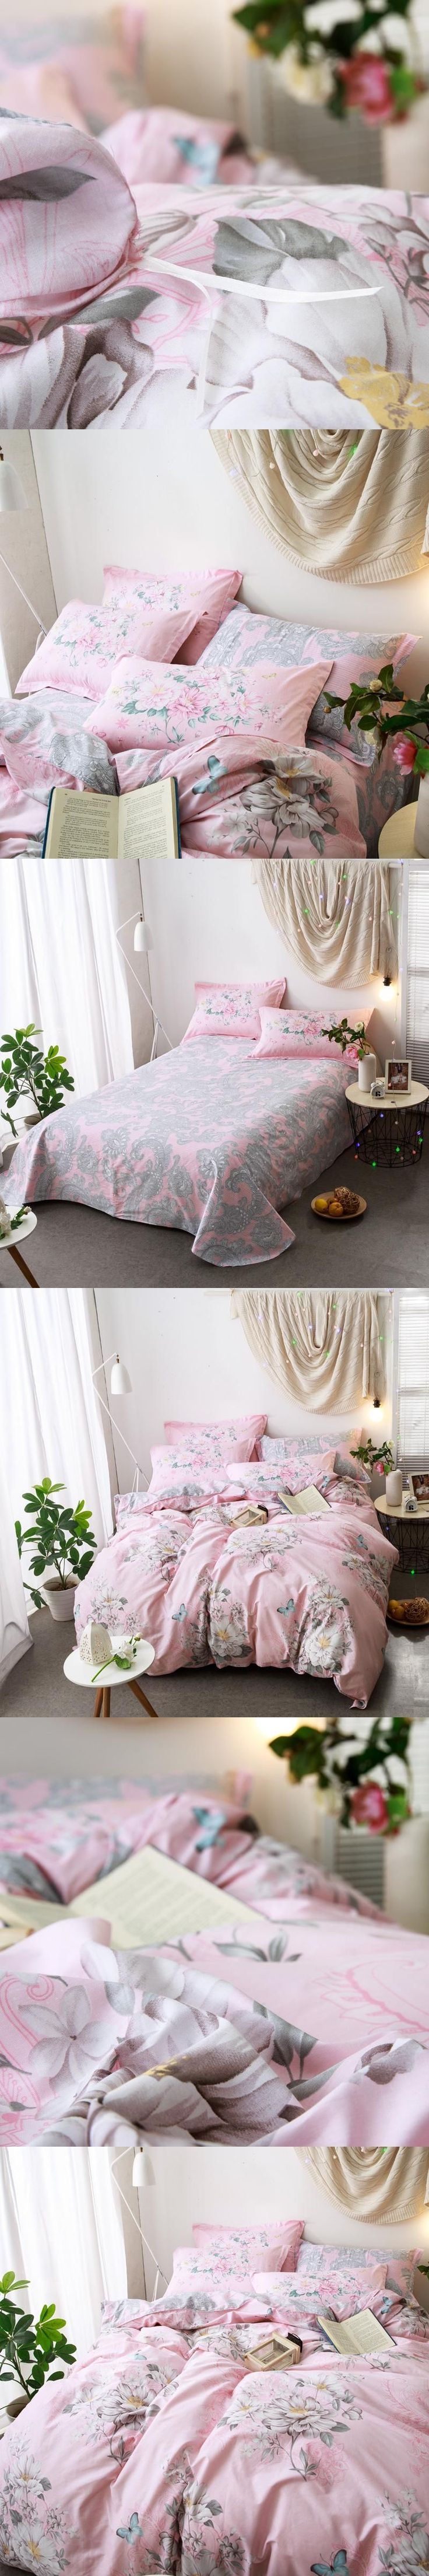 The 25 best Double bed covers ideas on Pinterest